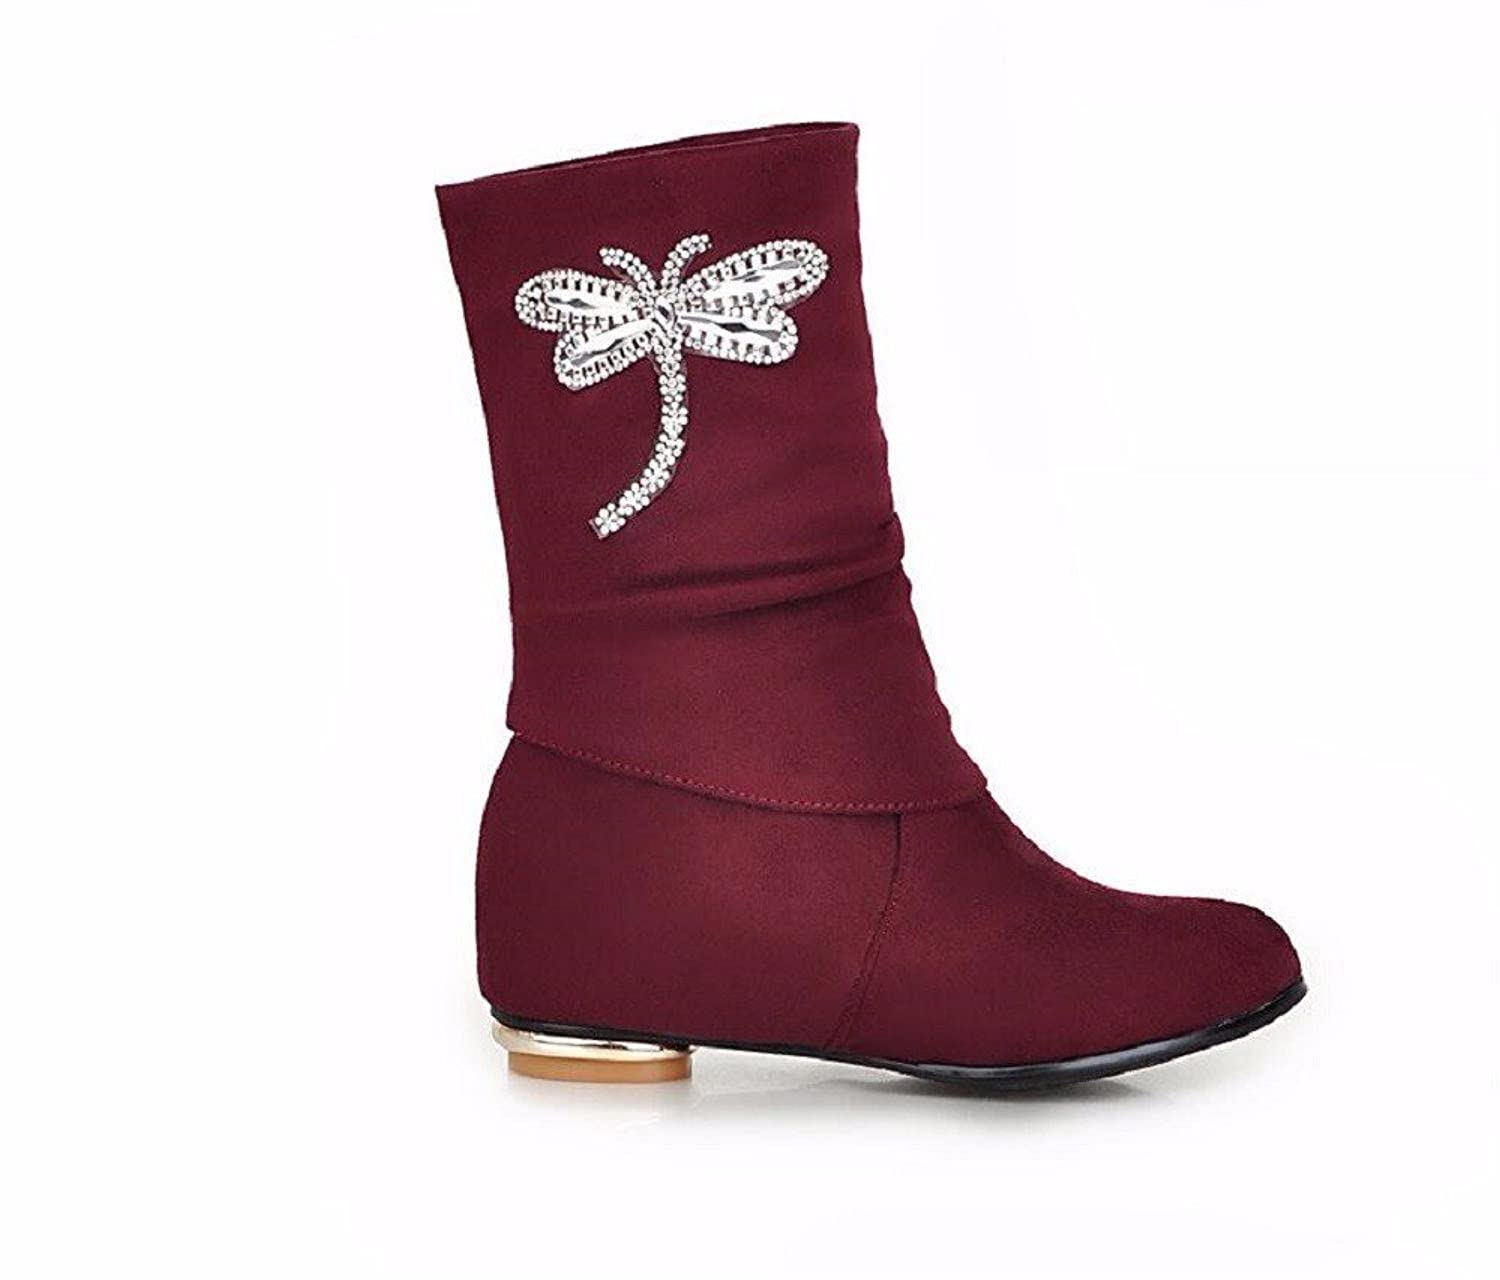 VULK Female Boots レディース メンズ B075V61NHW  31 Custom wine red